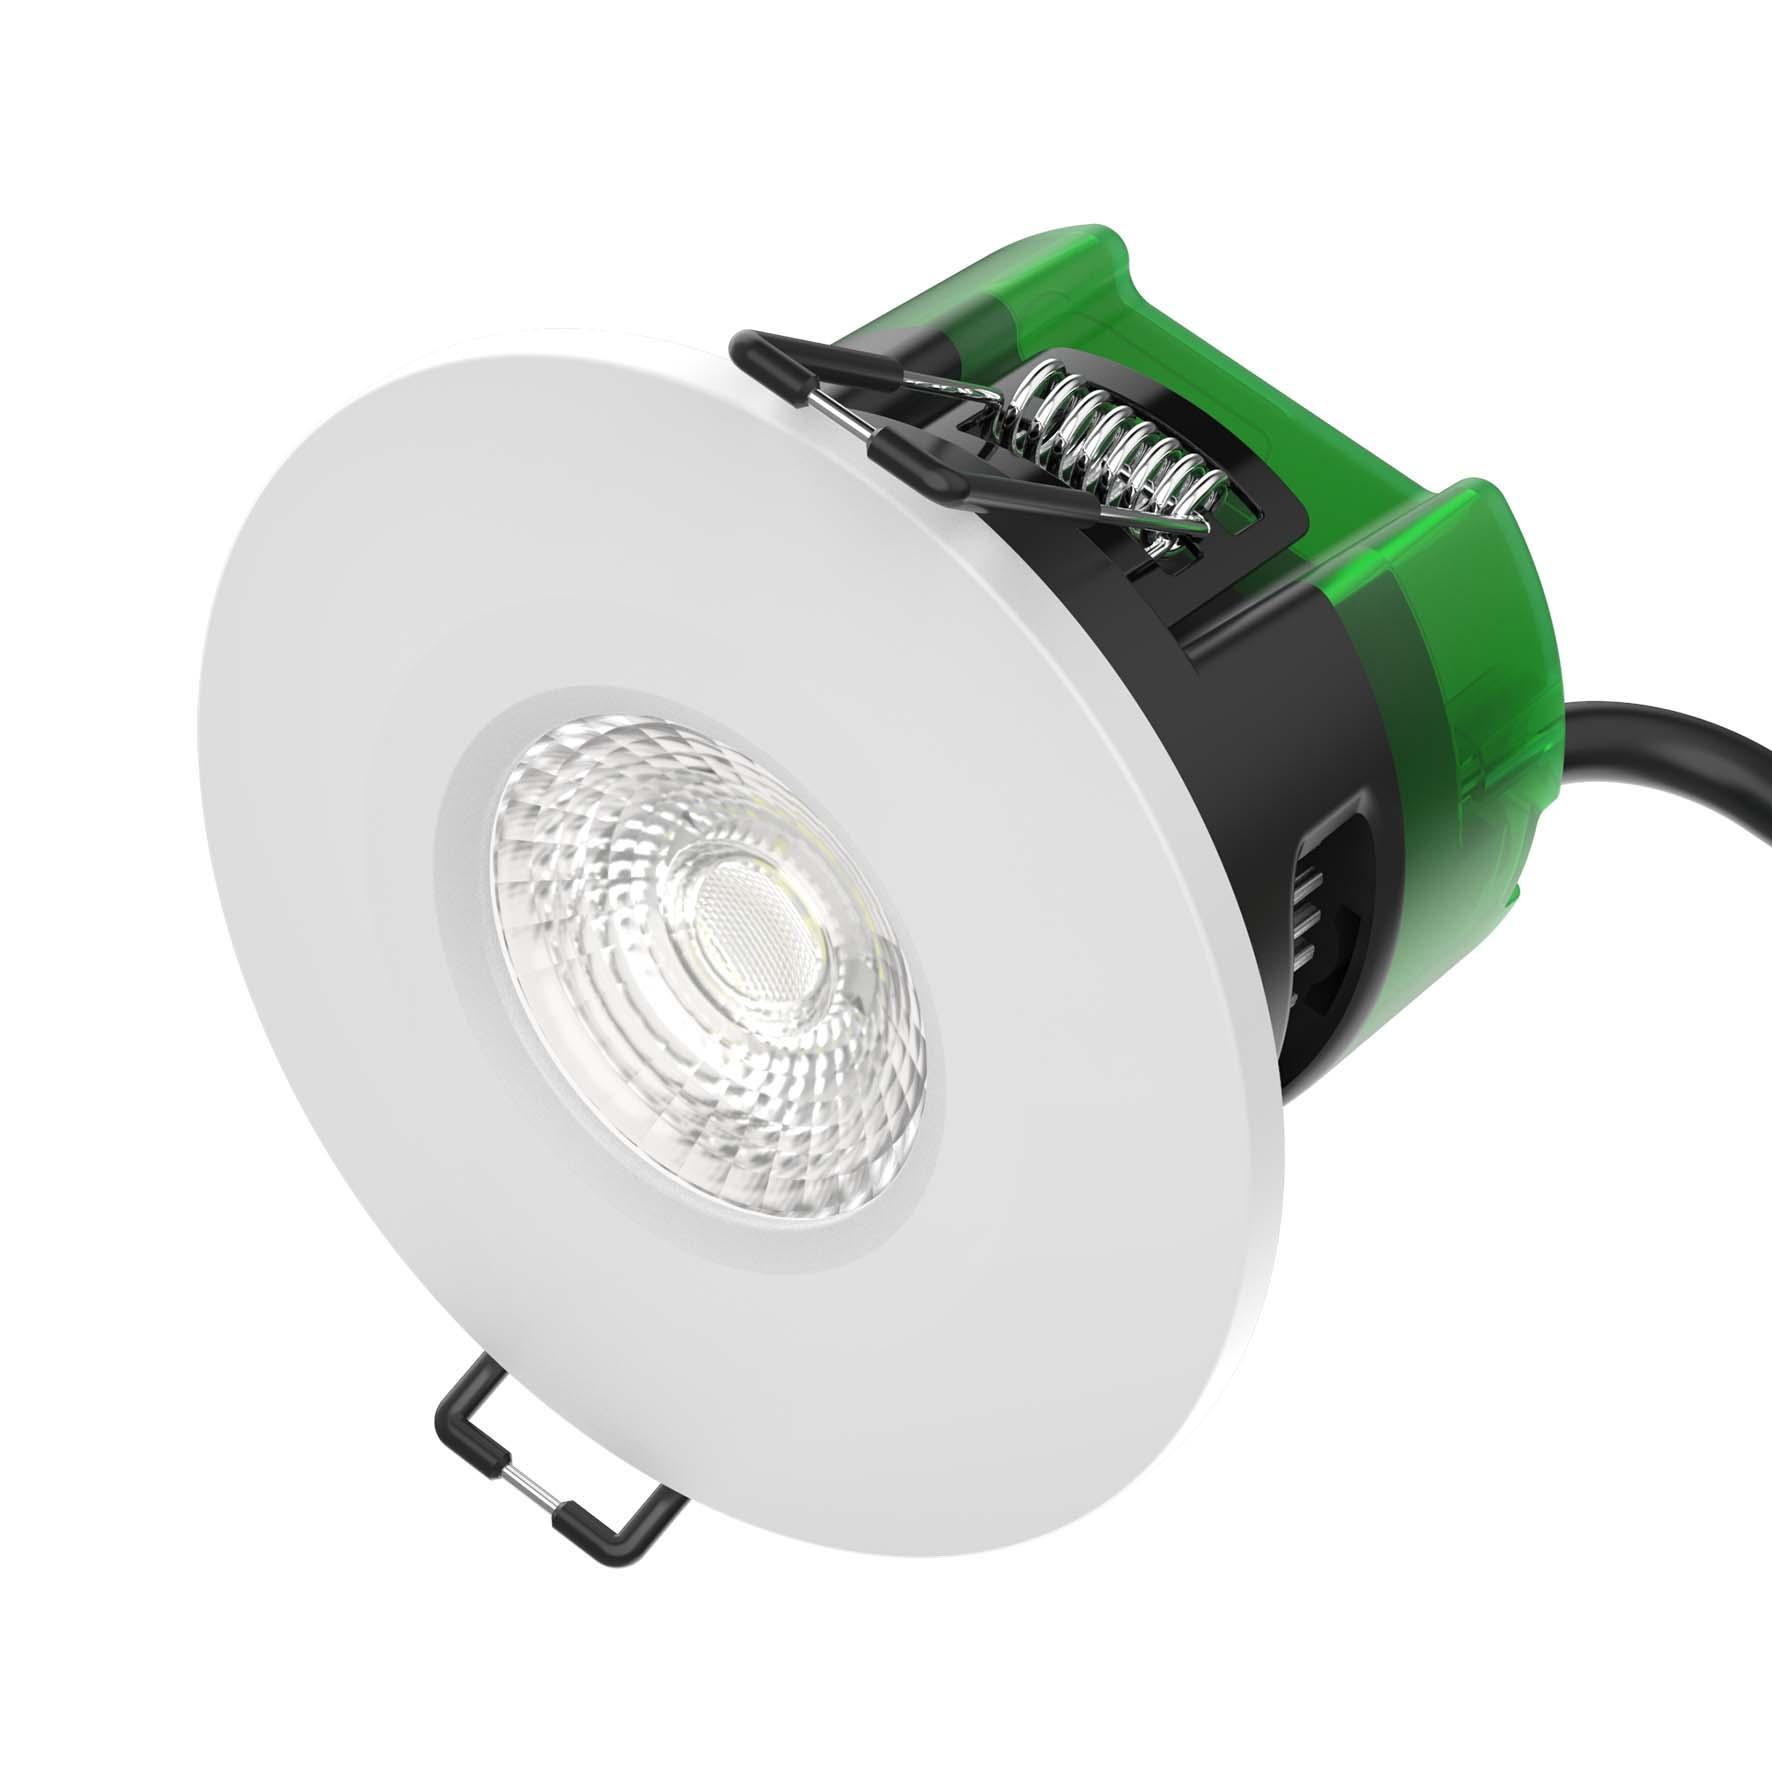 BL LED DL FIRESTAY FXD 6W IP65 830 D 35K DOWNLIGHT DIMMABLE FIXED